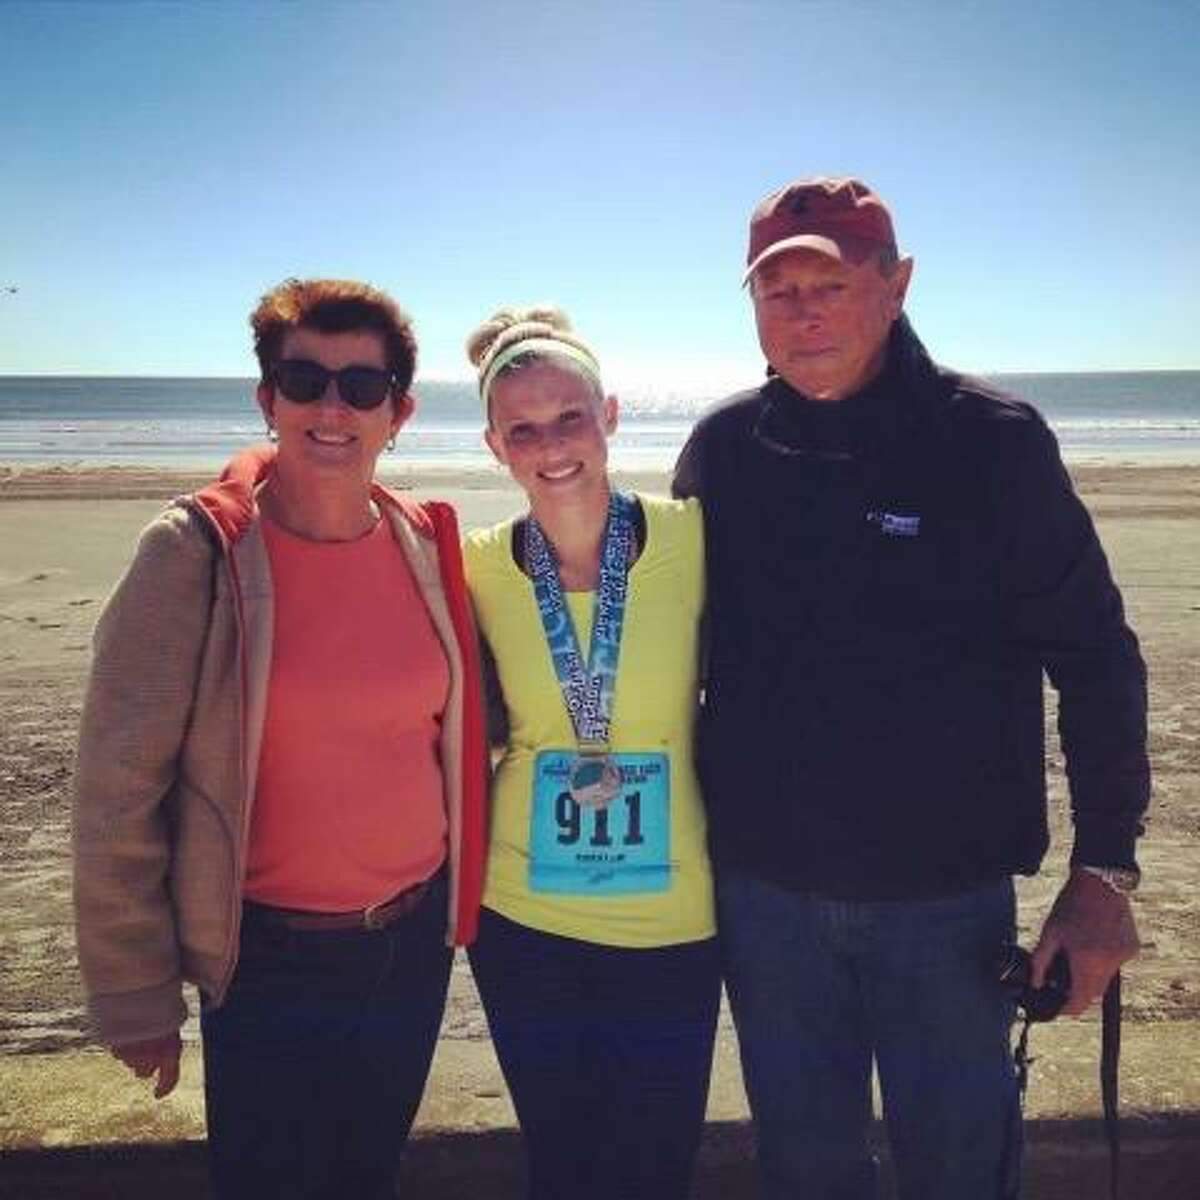 Lea Aruilio, center, with her mother Cindy Swanson and father Eric Swanson at the 2014 Newport Marathon.